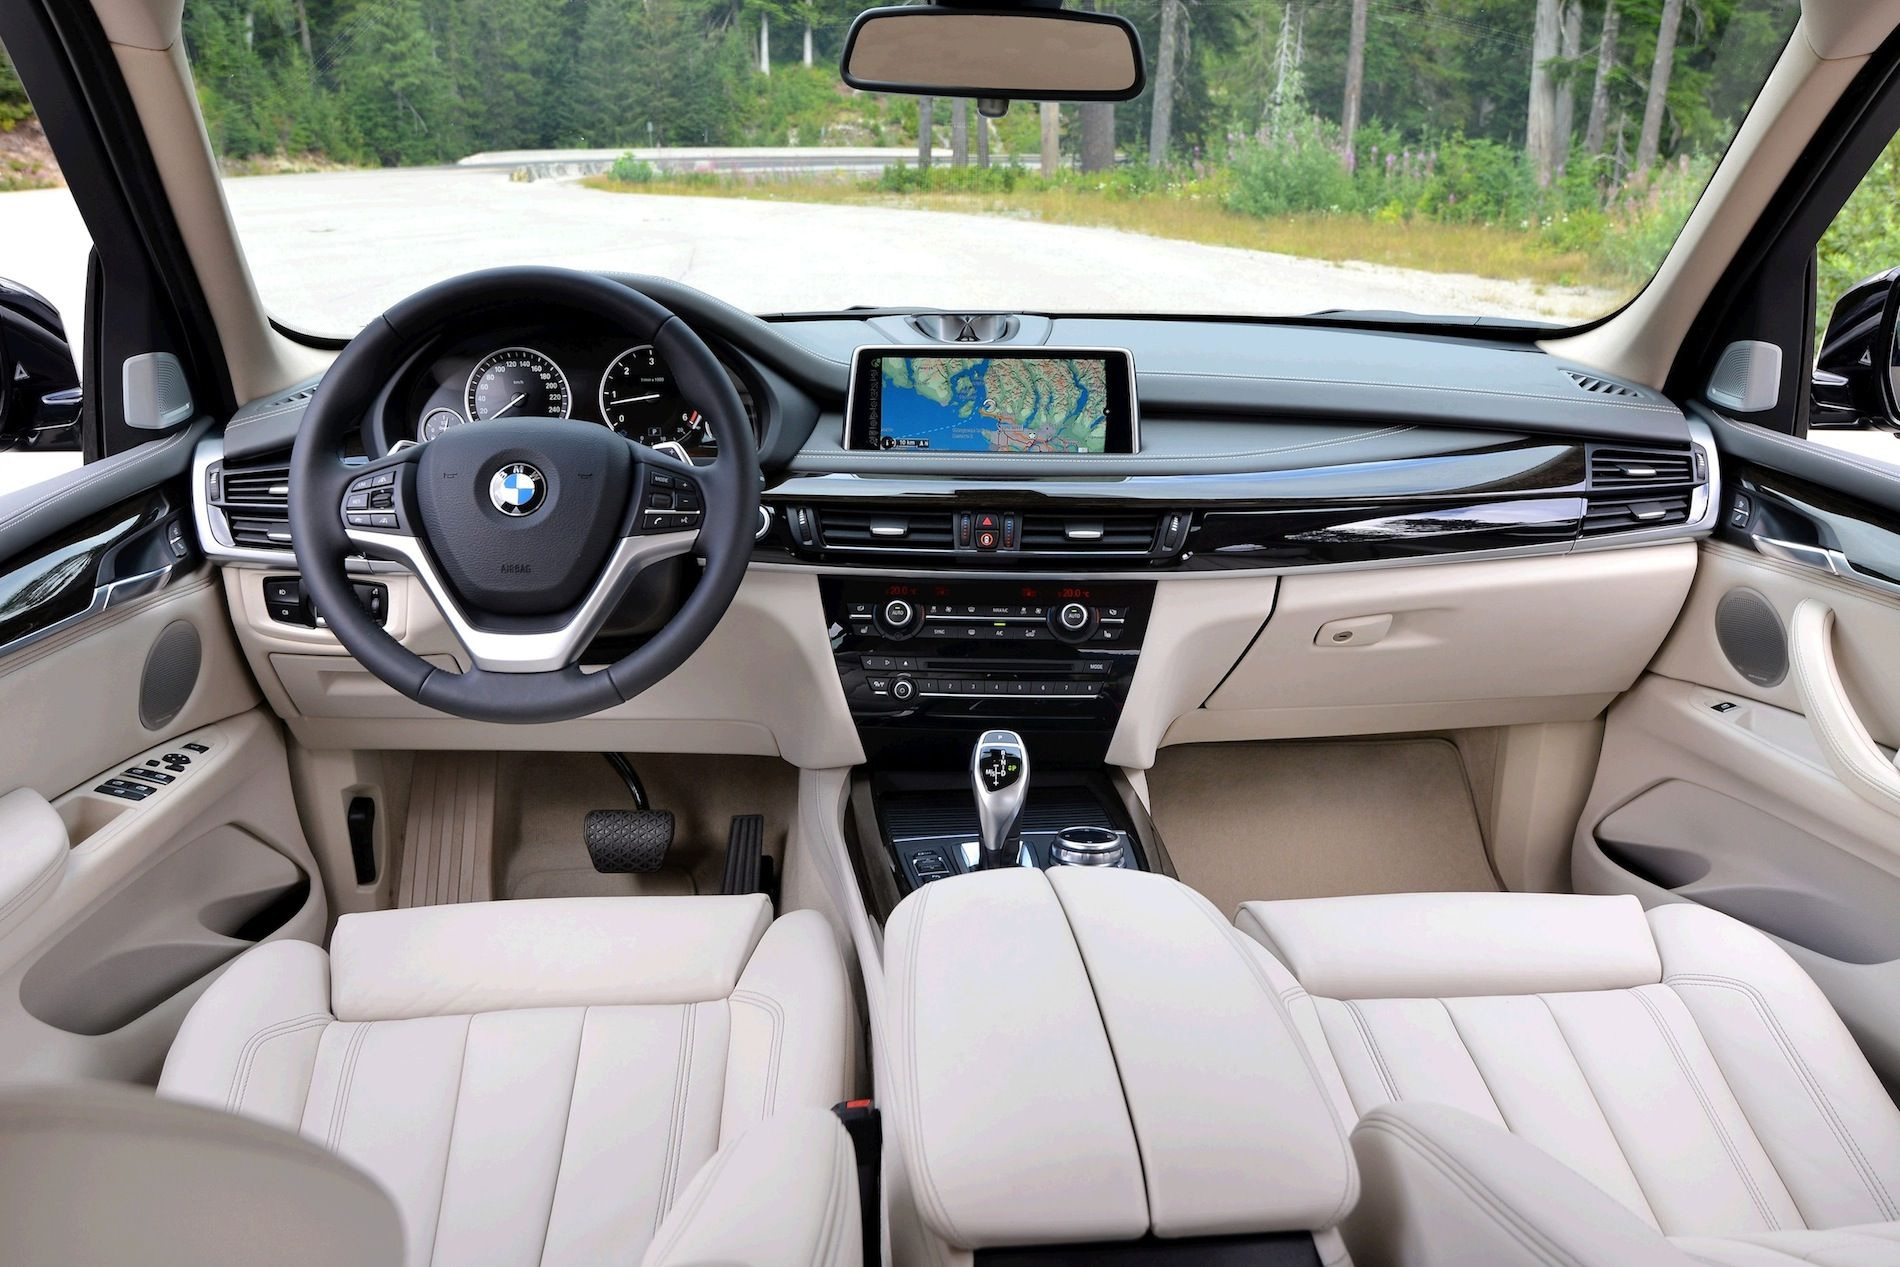 2014 Bmw X5 F15 Official Thread Information Wallpapers And Videos Bmw Classic Cars Bmw Suv Bmw X5 2014